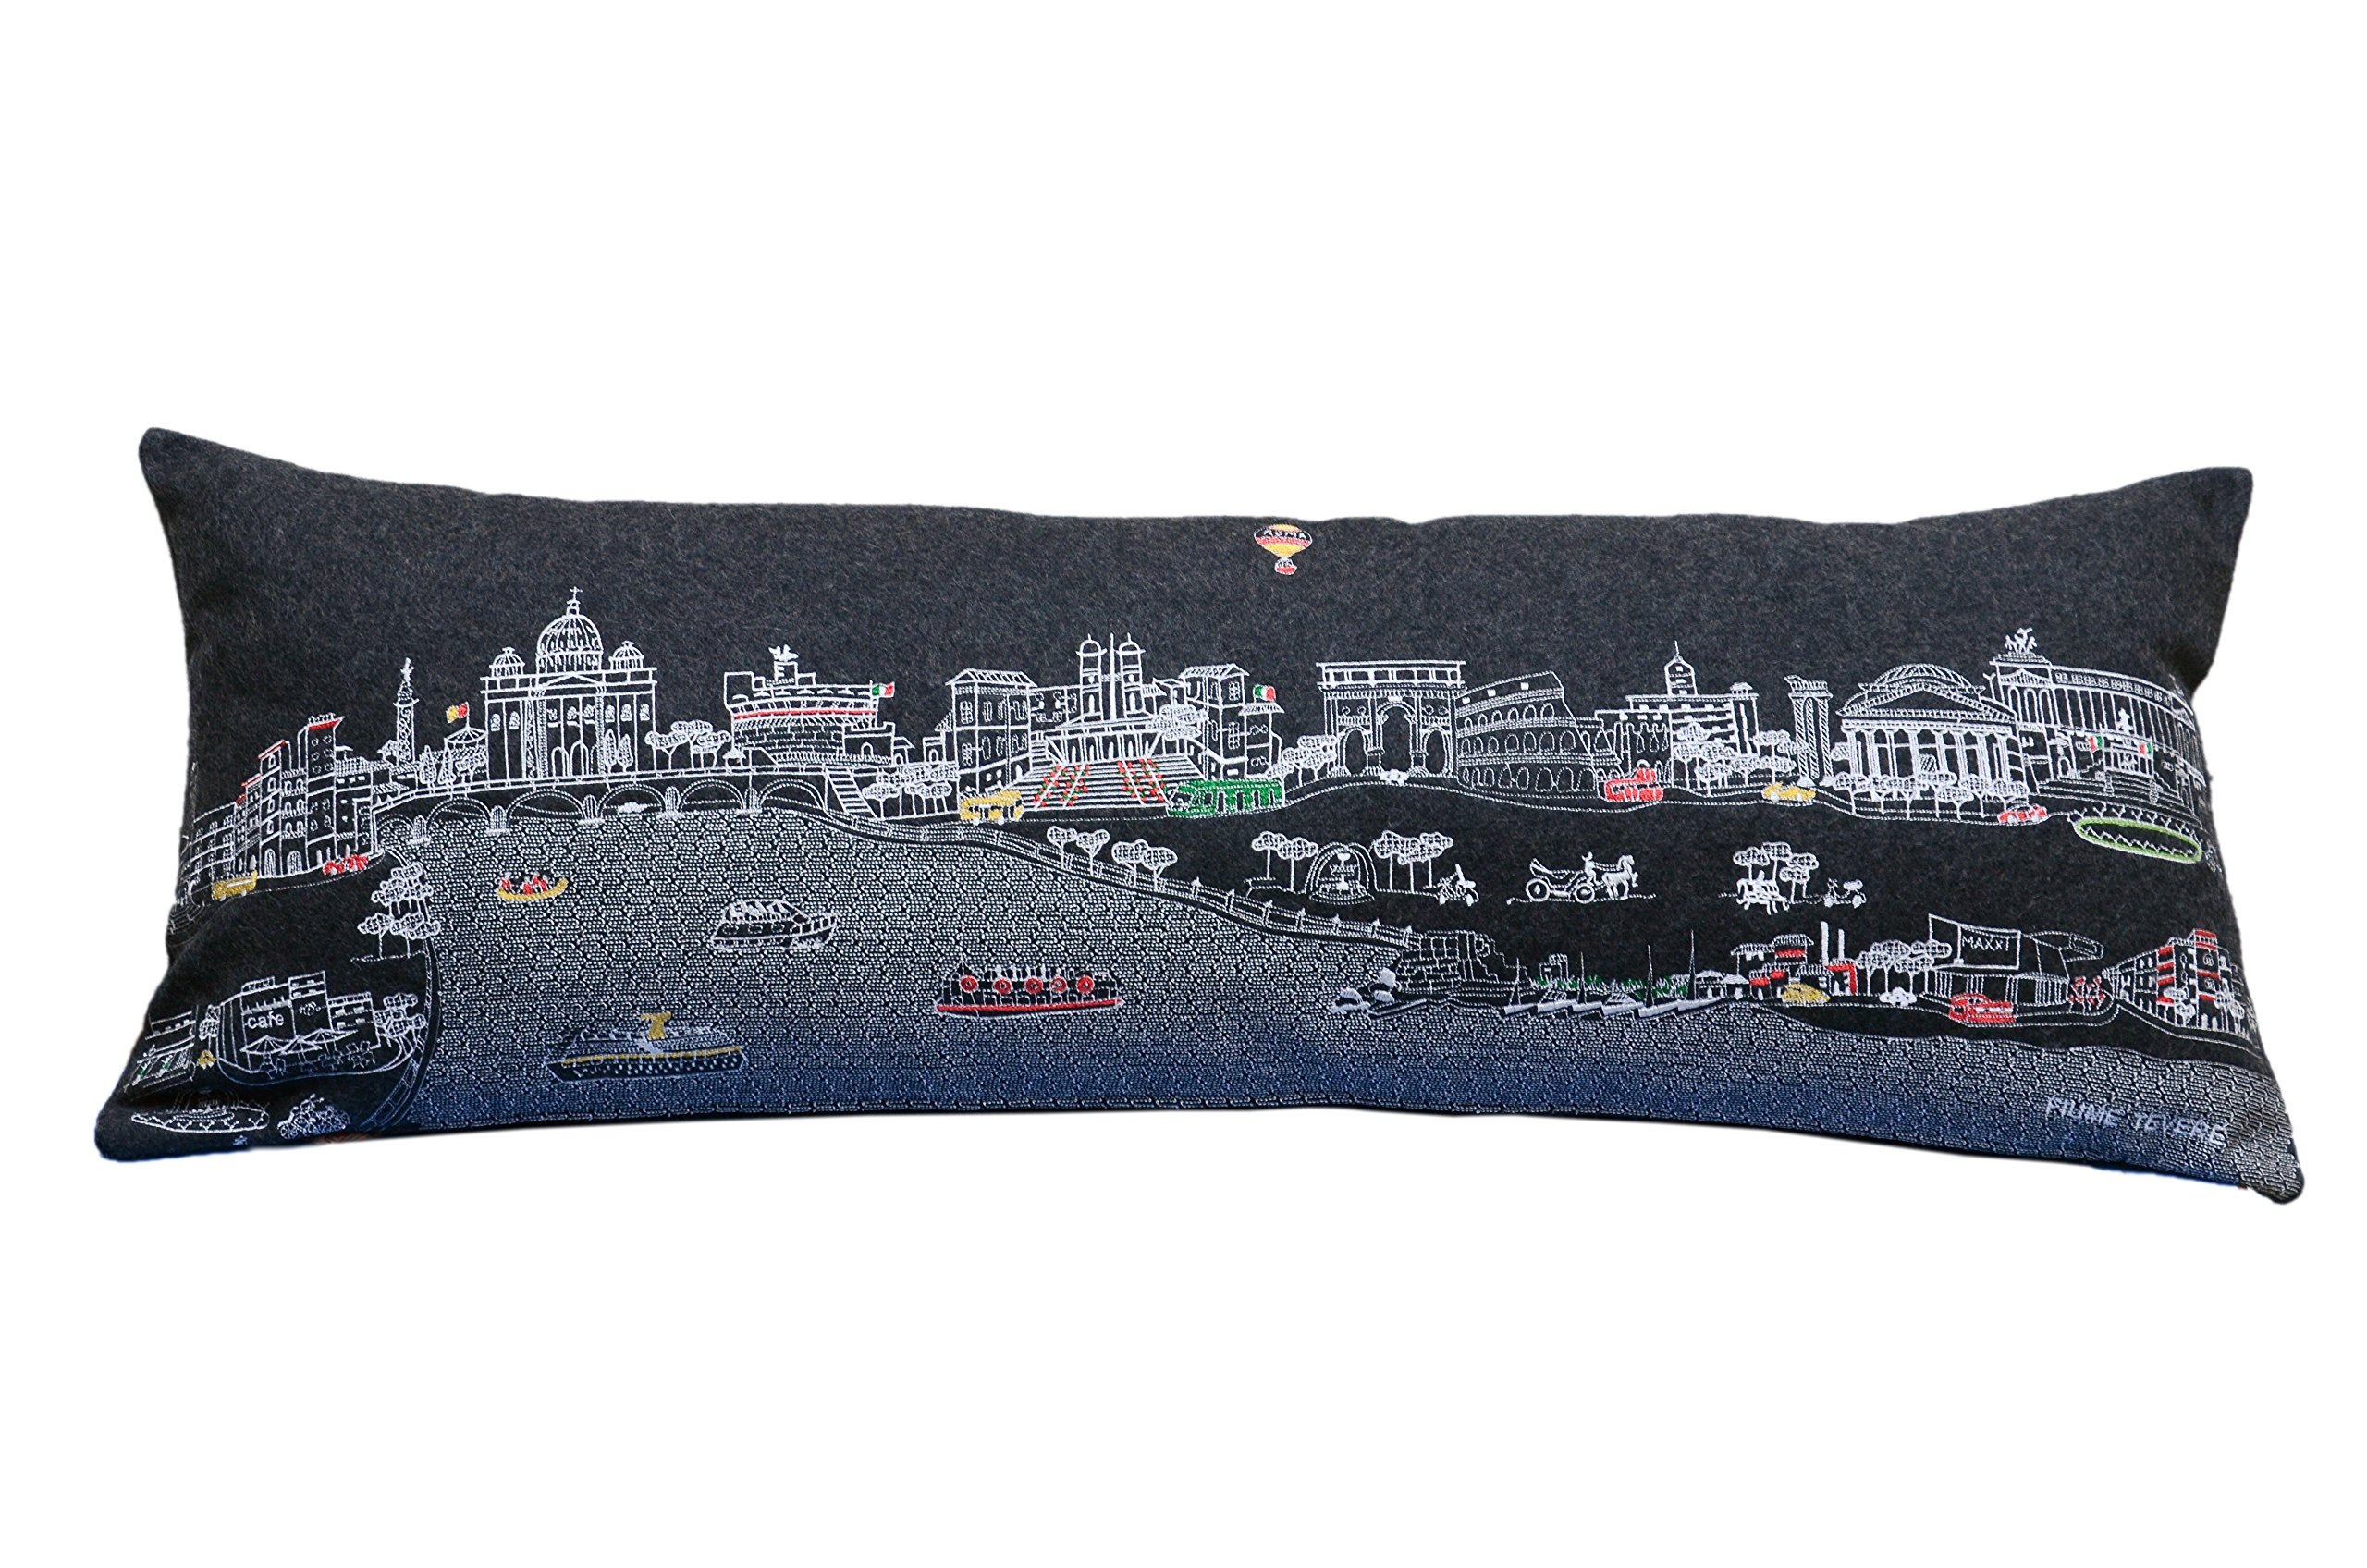 Beyond Cushions Polyester Throw Pillows Beyond Cushions Rome, Italy Night Skyline Queen Size Embroidered Accent Pillow 35 X 14 X 5 Inches Black Model # ROM-NGT-QUN